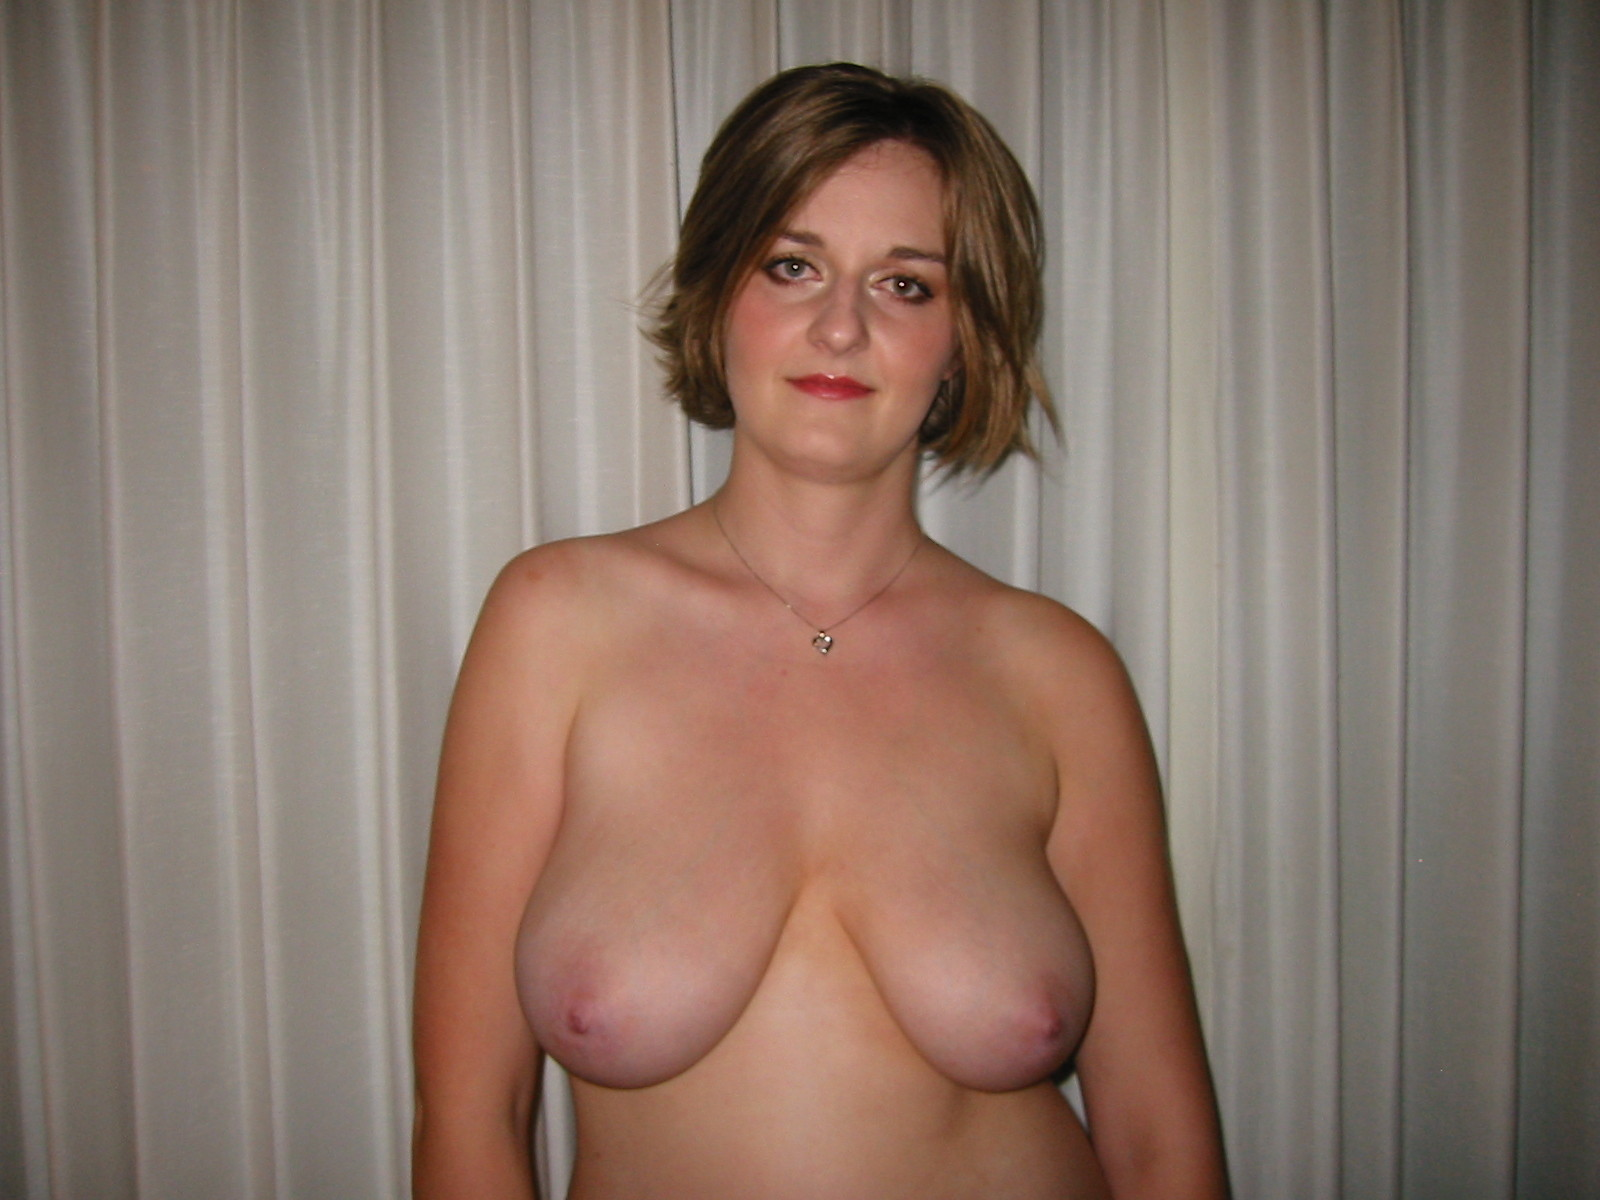 Tits naked wife small